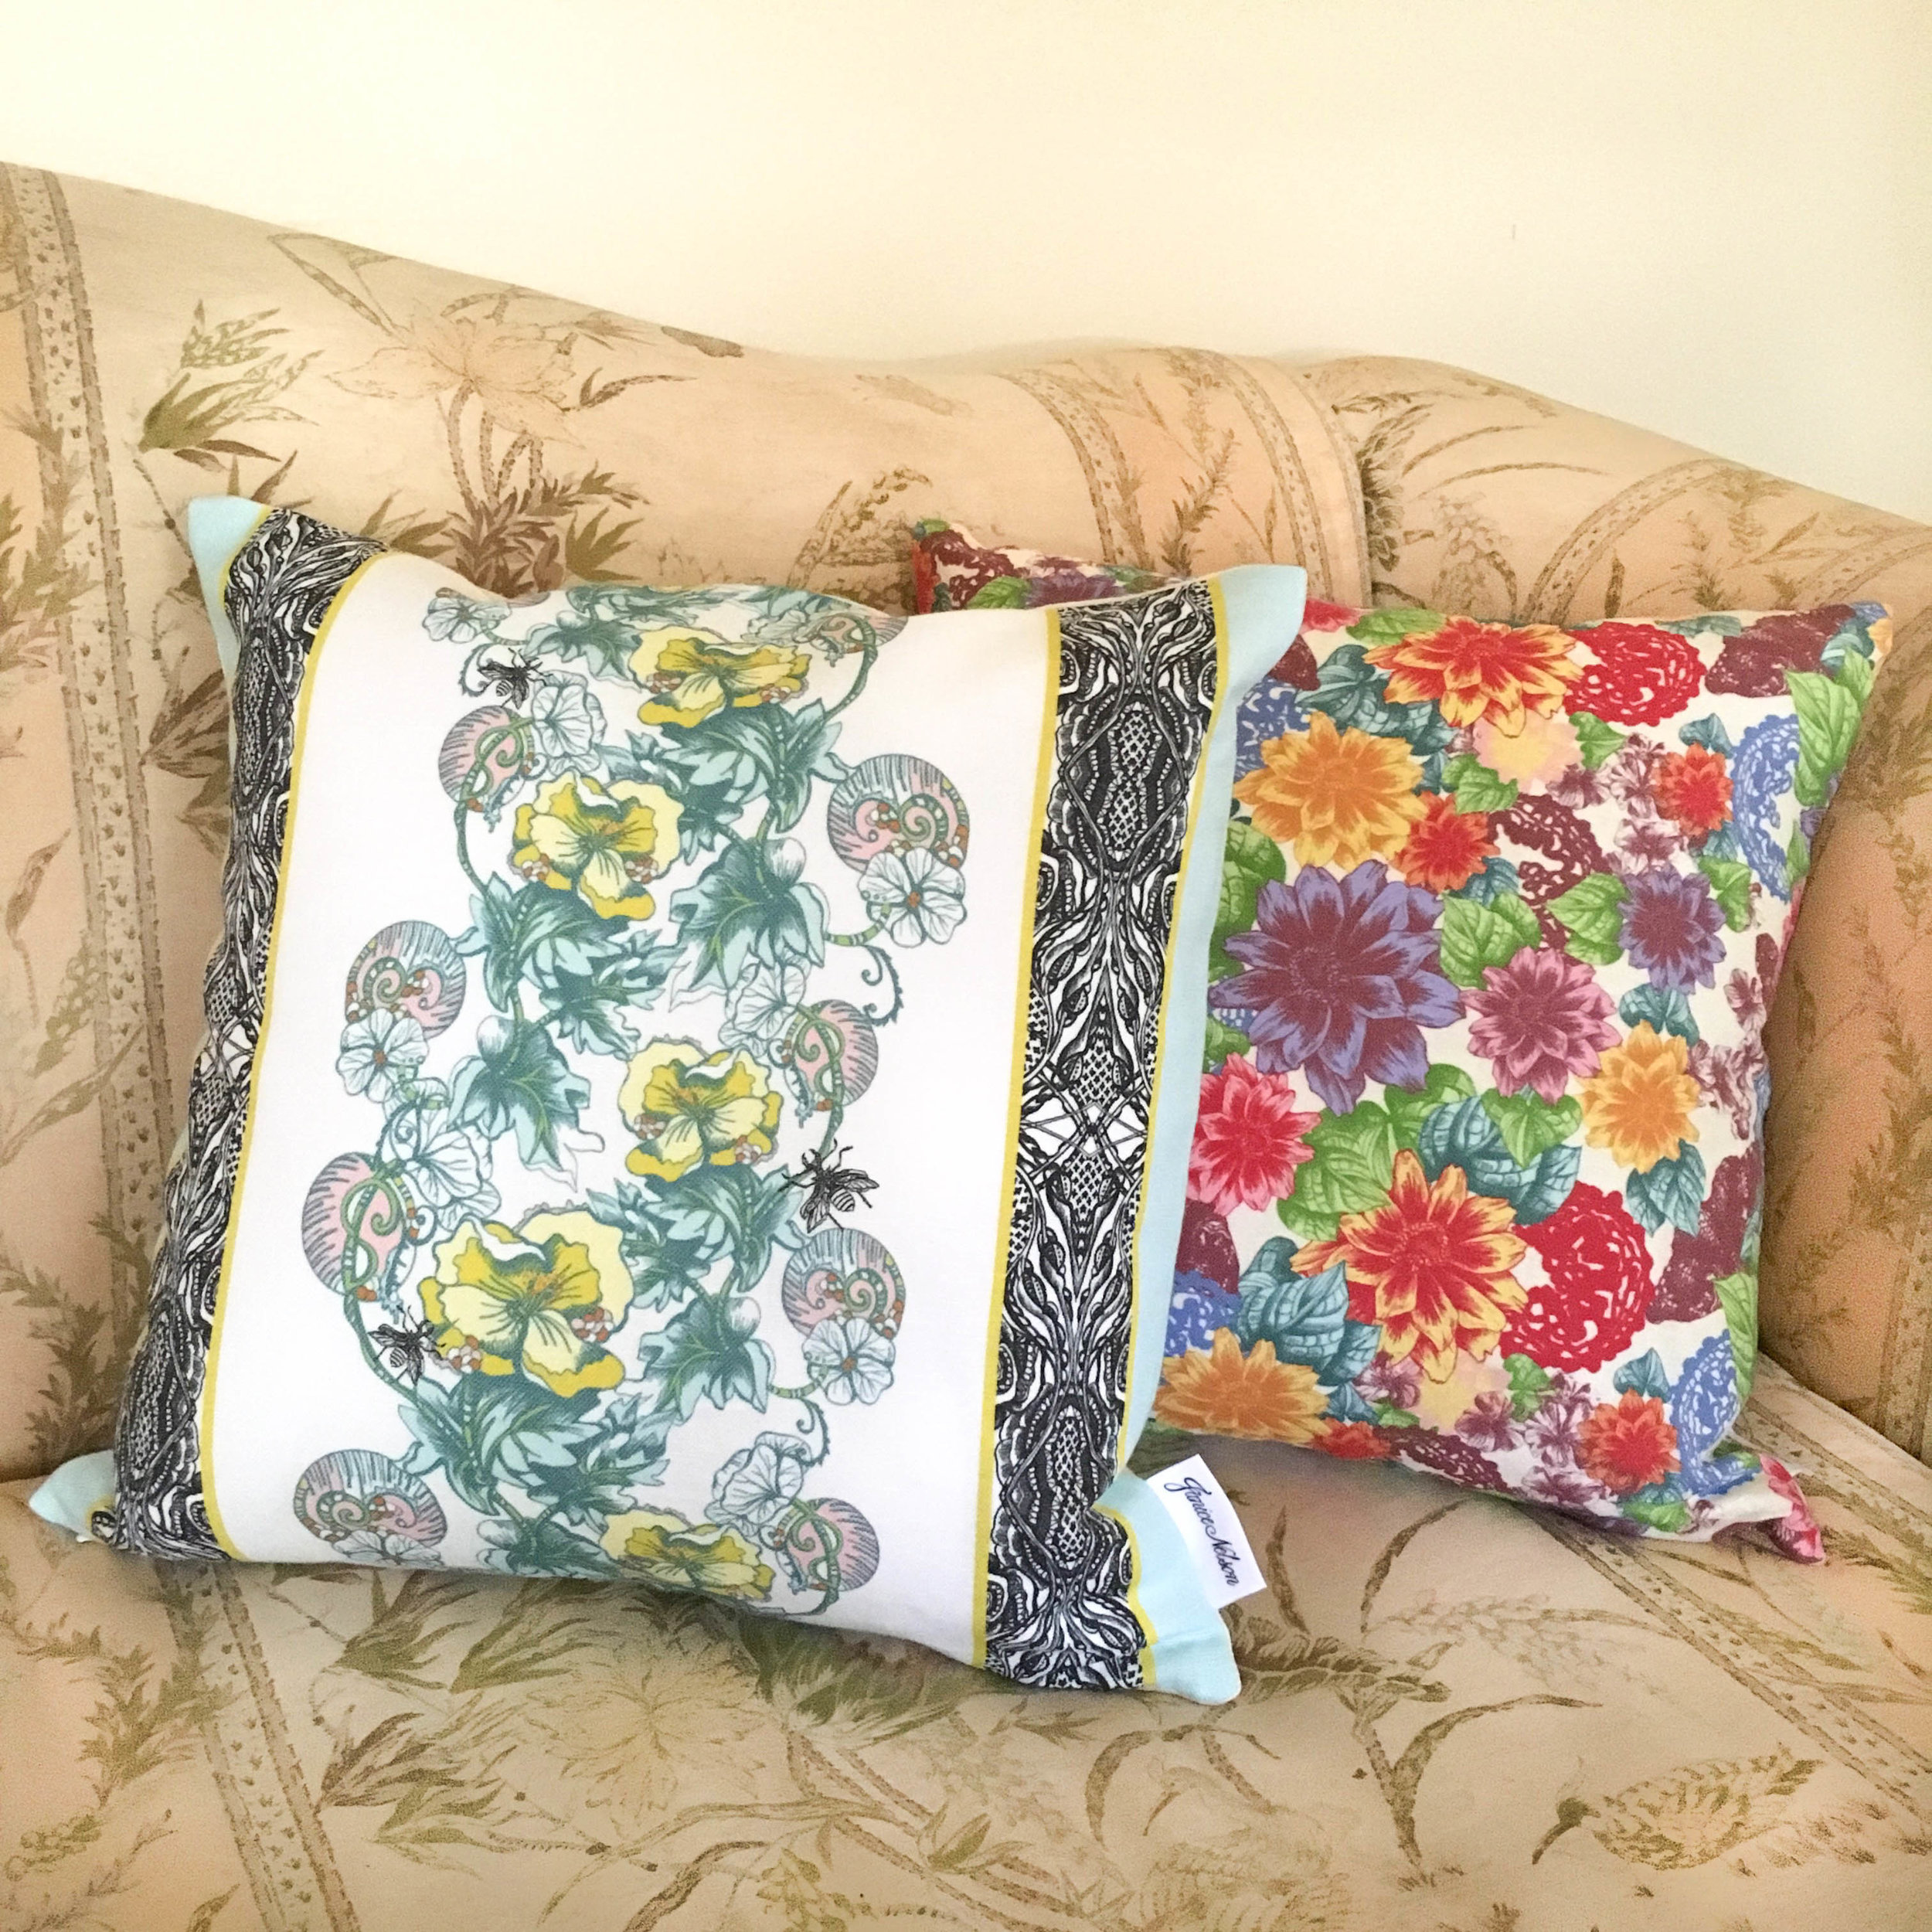 Made in USA Celandine Pillow with Zale Pillow displayed on sofa